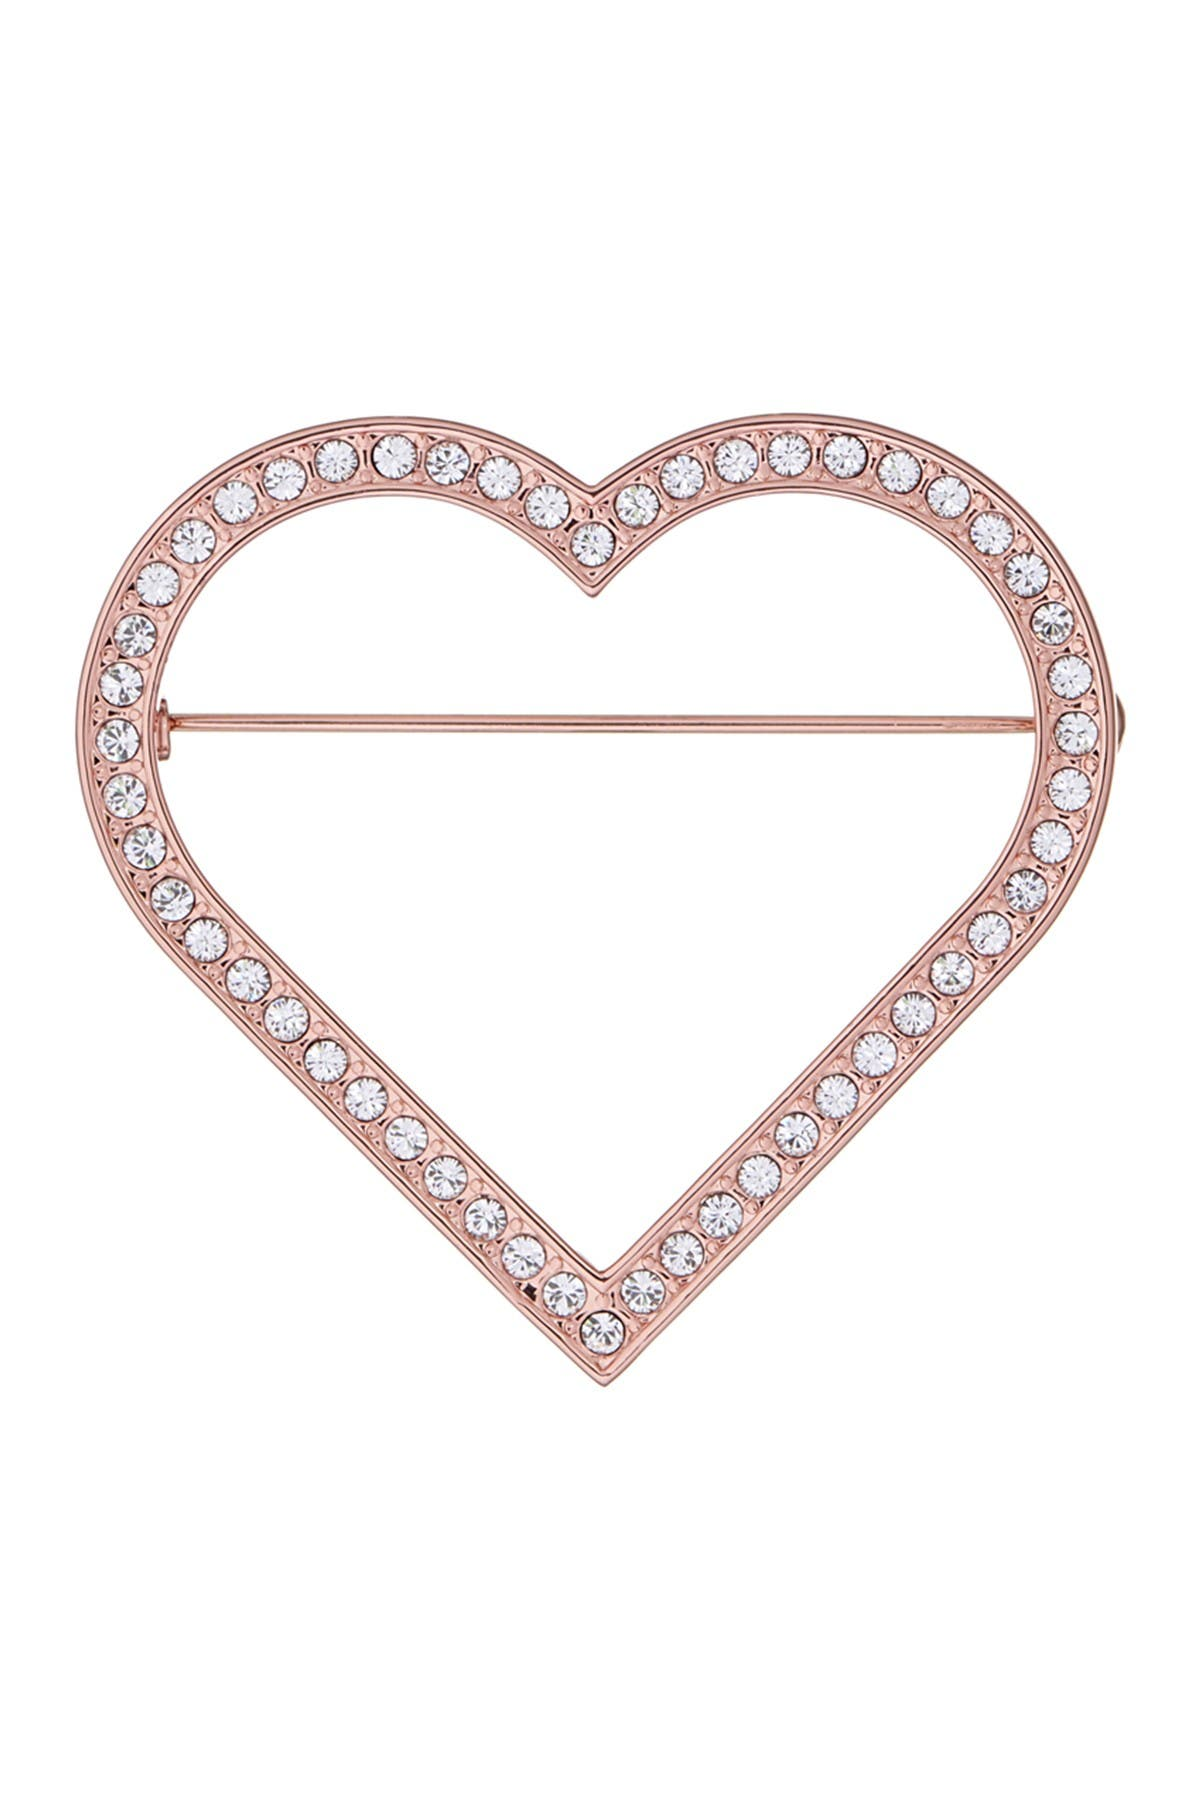 Image of Ted Baker London Rose Gold Plated Estrada Enchanted Heart Brooch